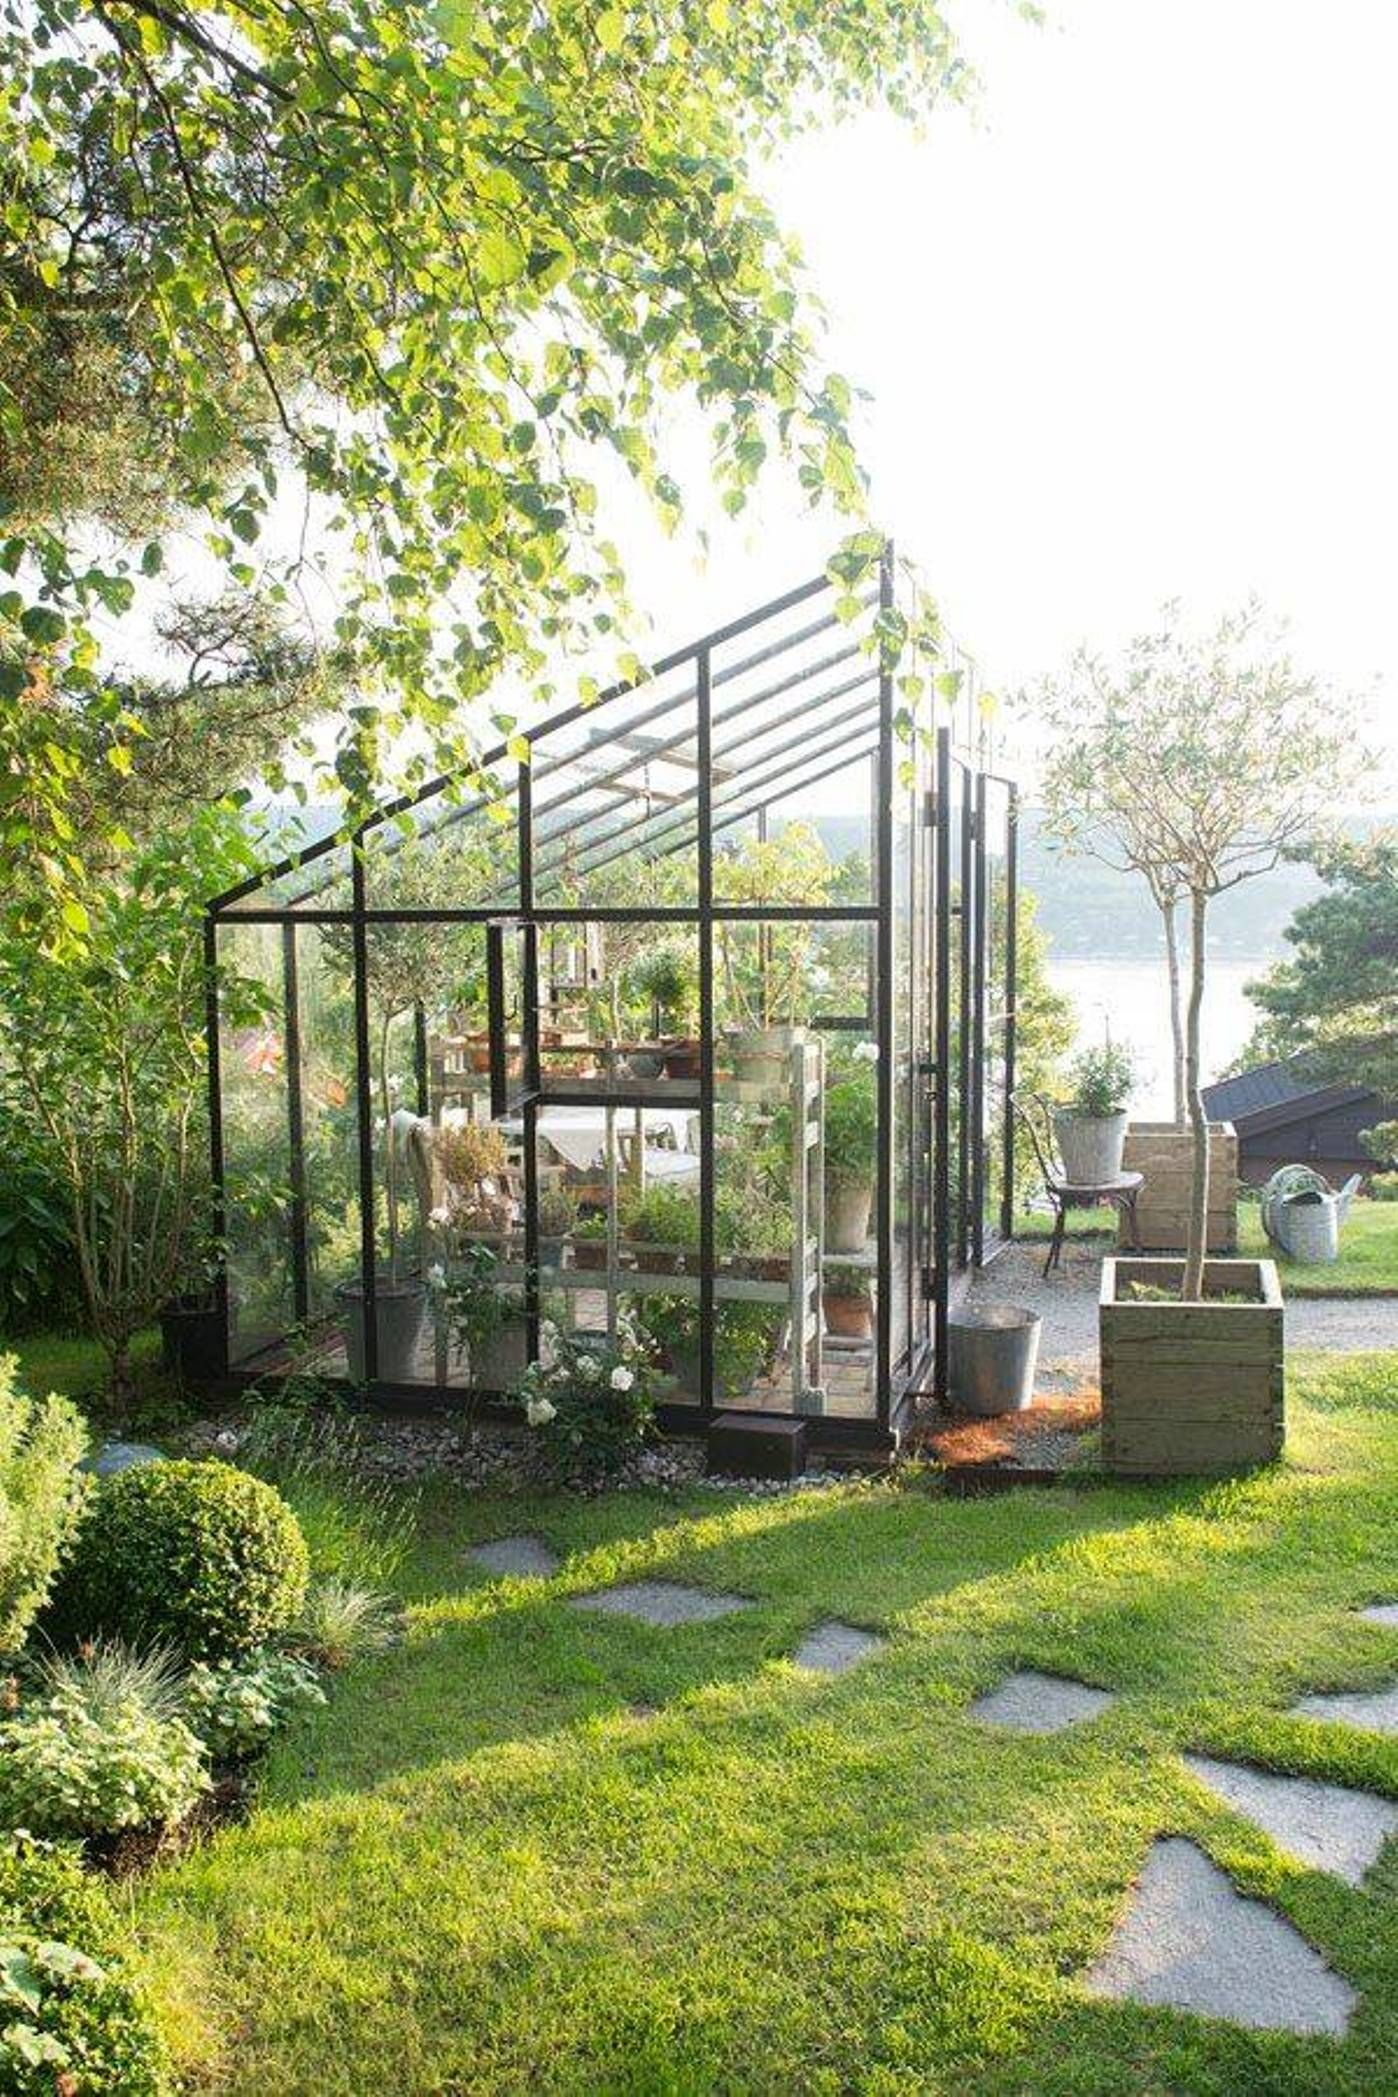 Landscaping and outdoor building building an outdoor greenhouse modern greenhouse